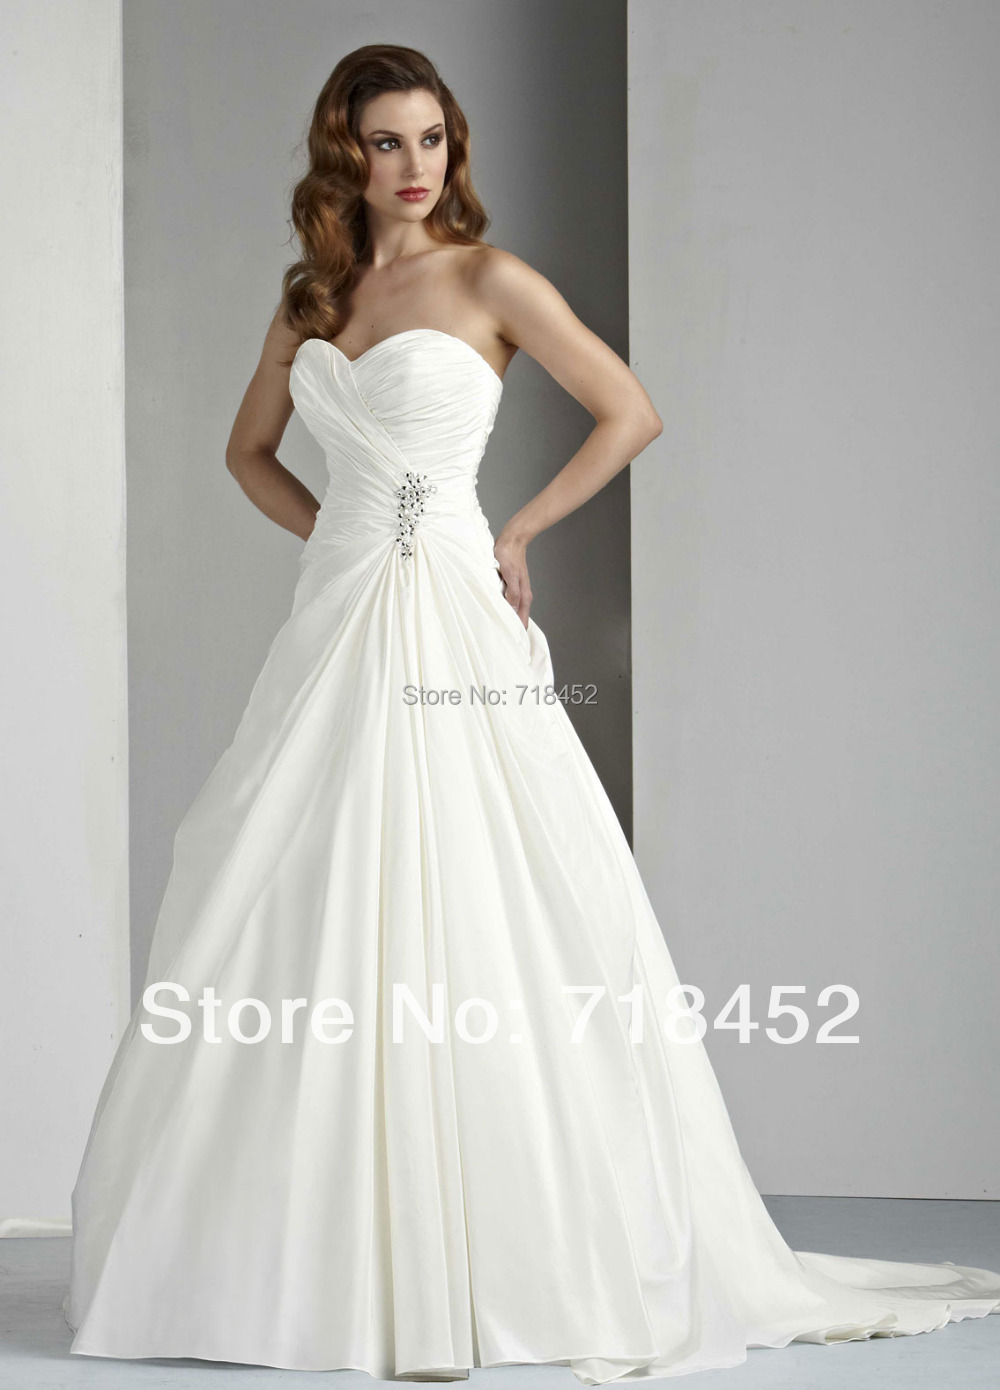 Compare Prices on Mature Bridal Gowns- Online Shopping/Buy Low ...